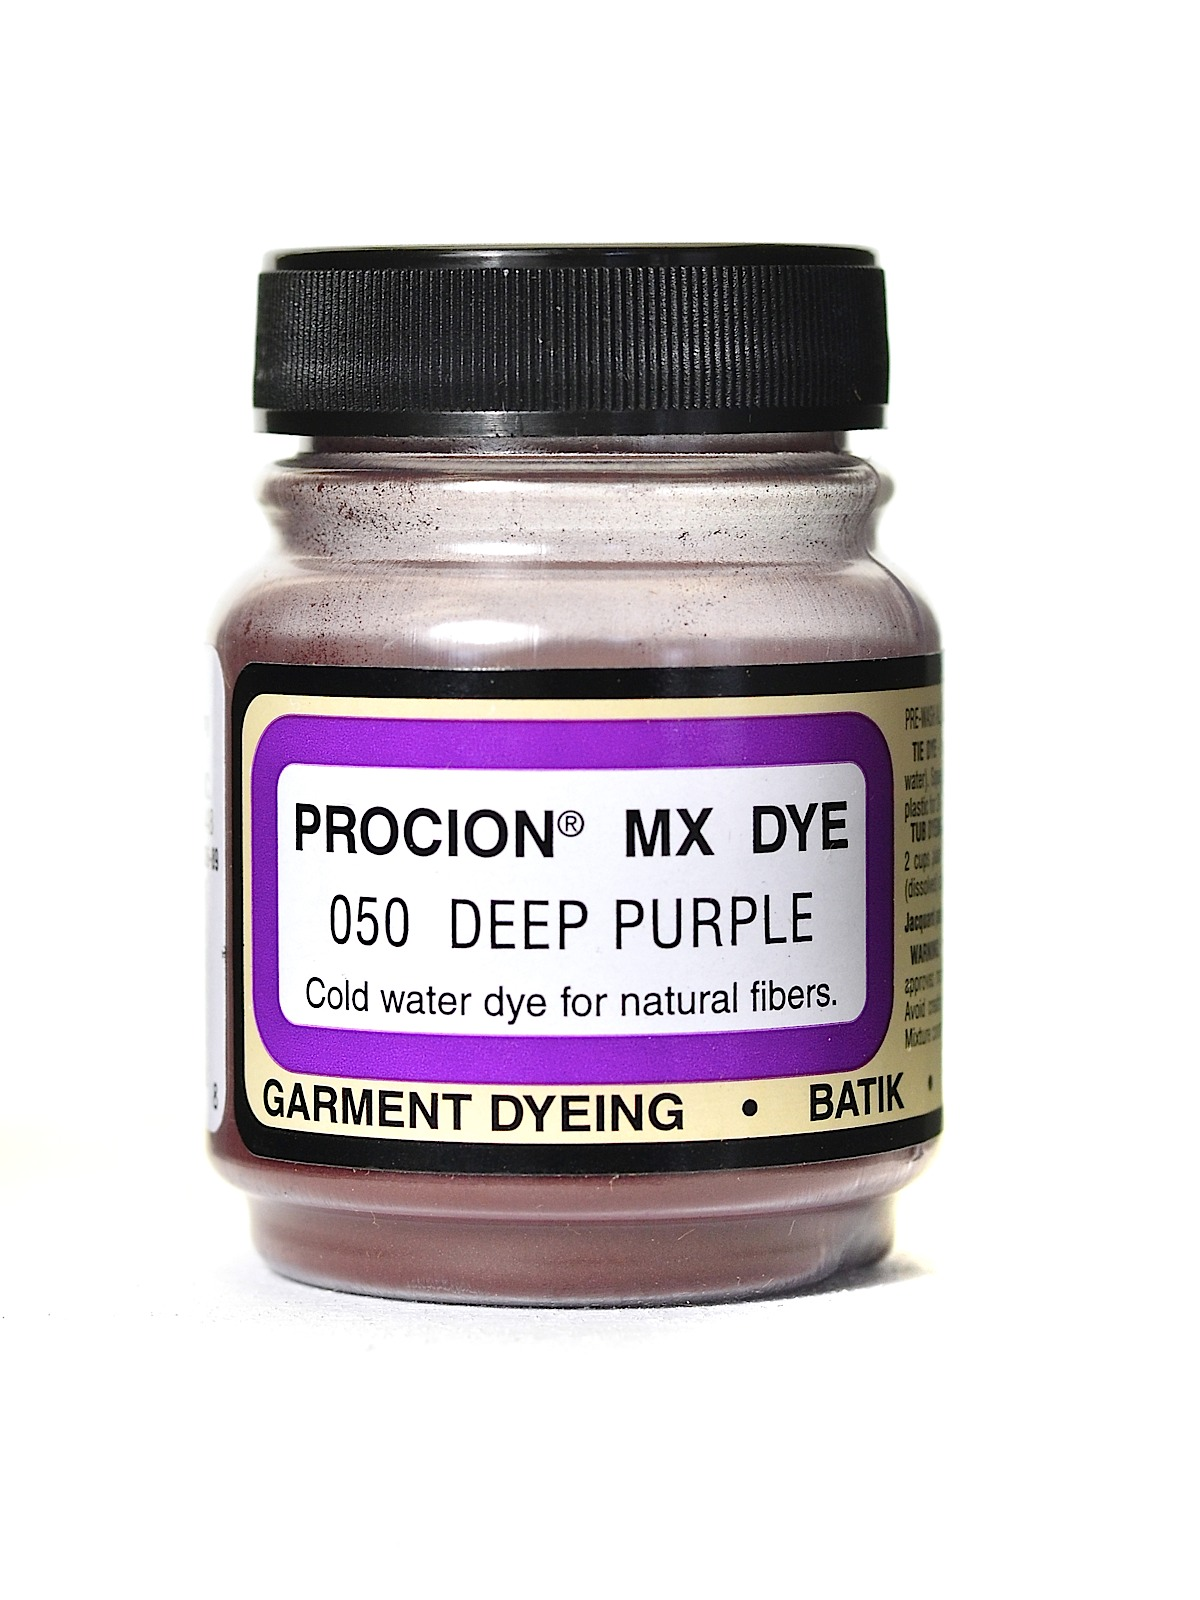 Jacquard Procion MX dye 2050 Deep purple